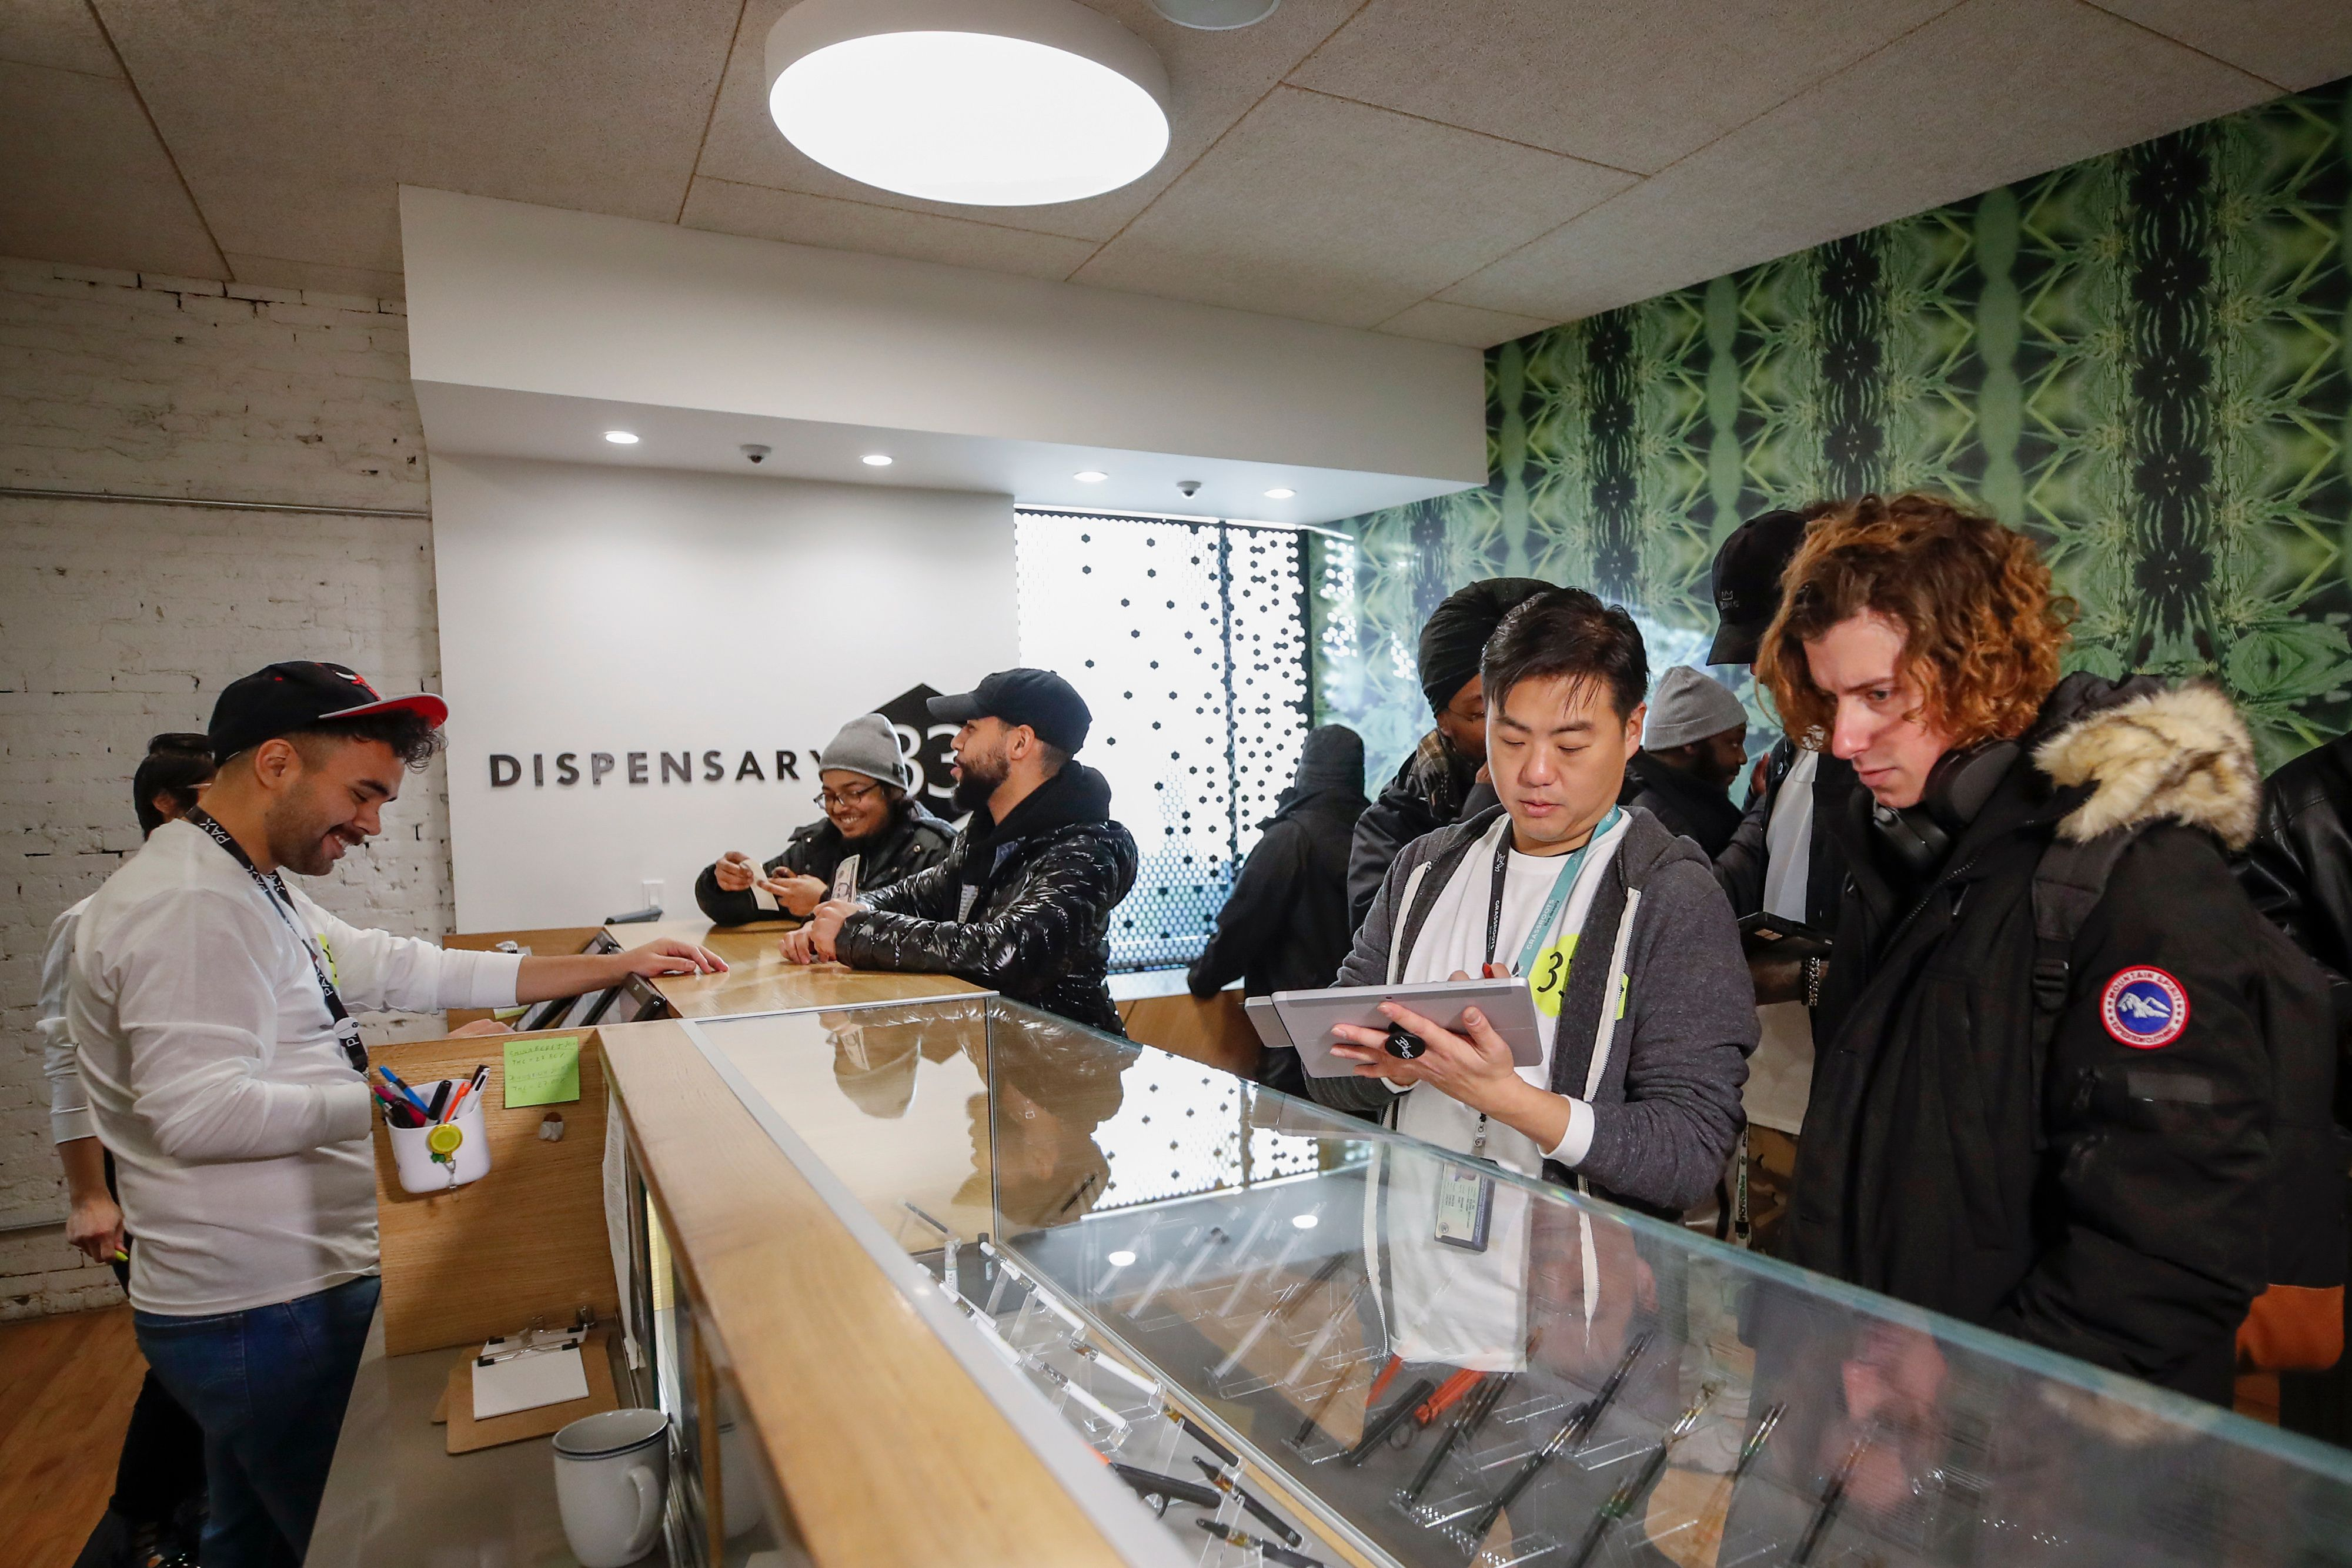 Customers shop for a recreational marijuana at Dispensary 33 store on January 1, 2020 in Chicago, Illinois.